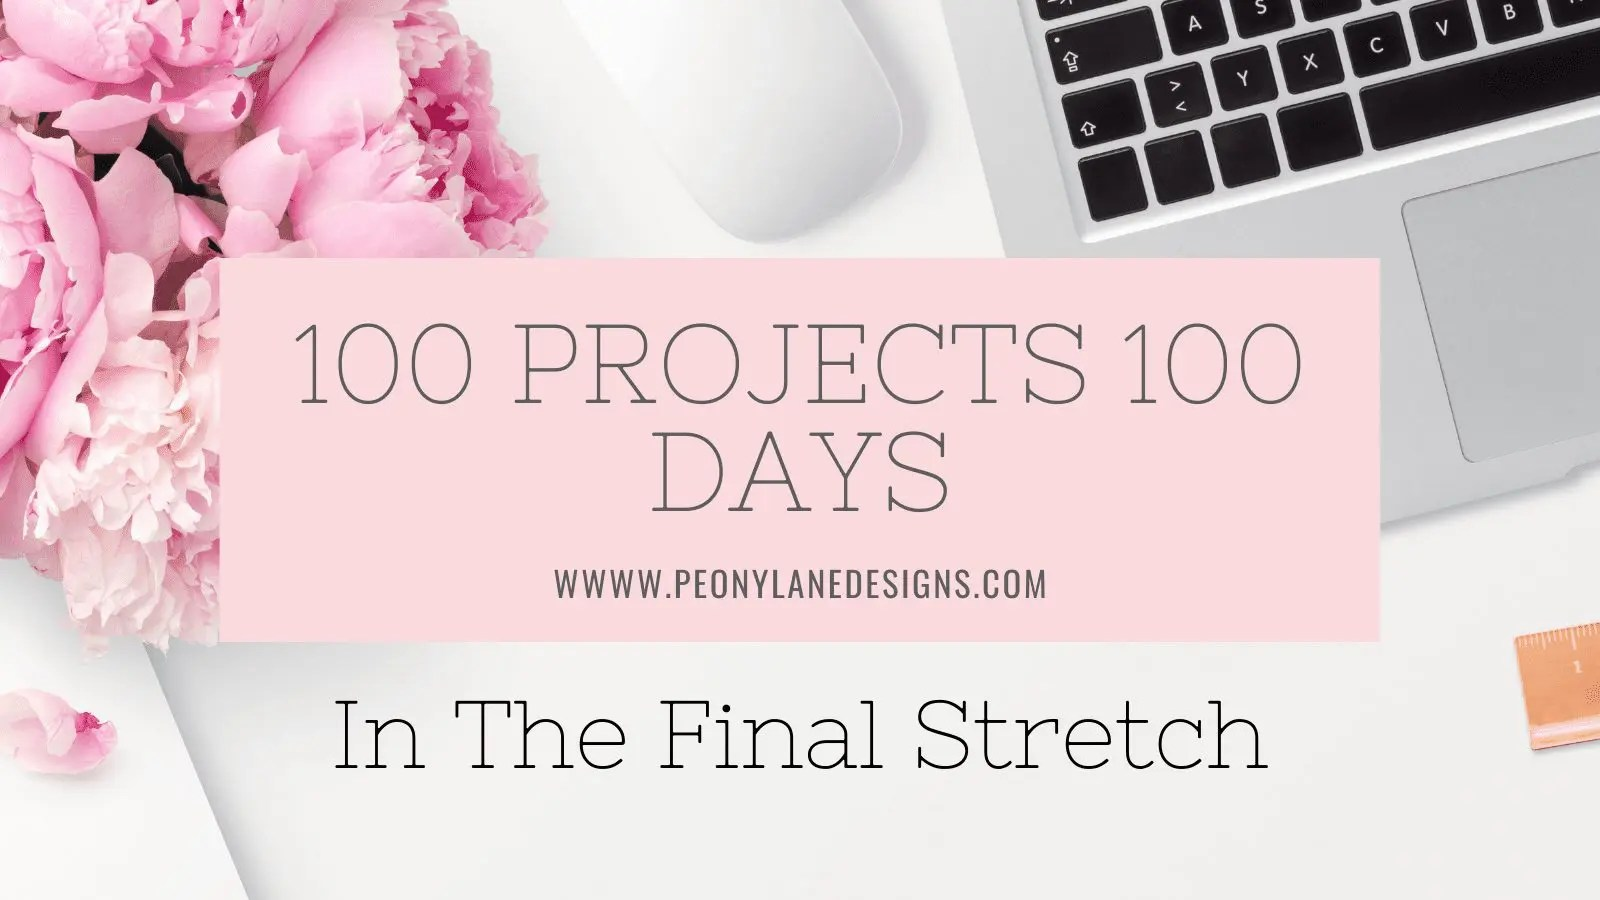 100 Projects 100 Days the Final Stretch